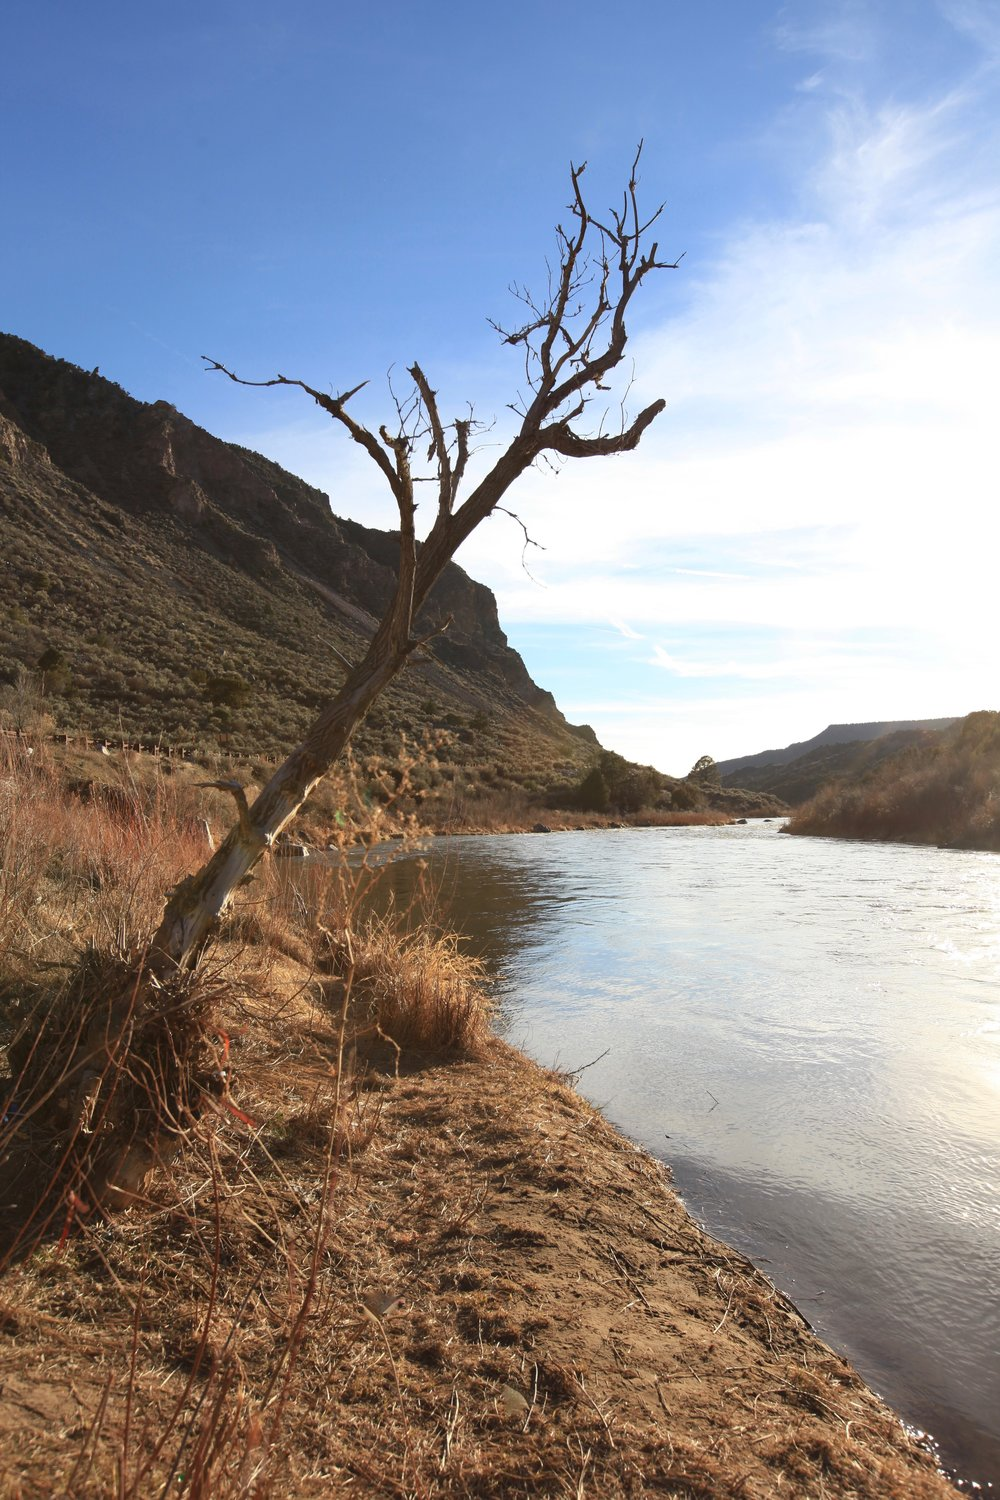 The Rio Grande - such a romantic river - just south of Taos.